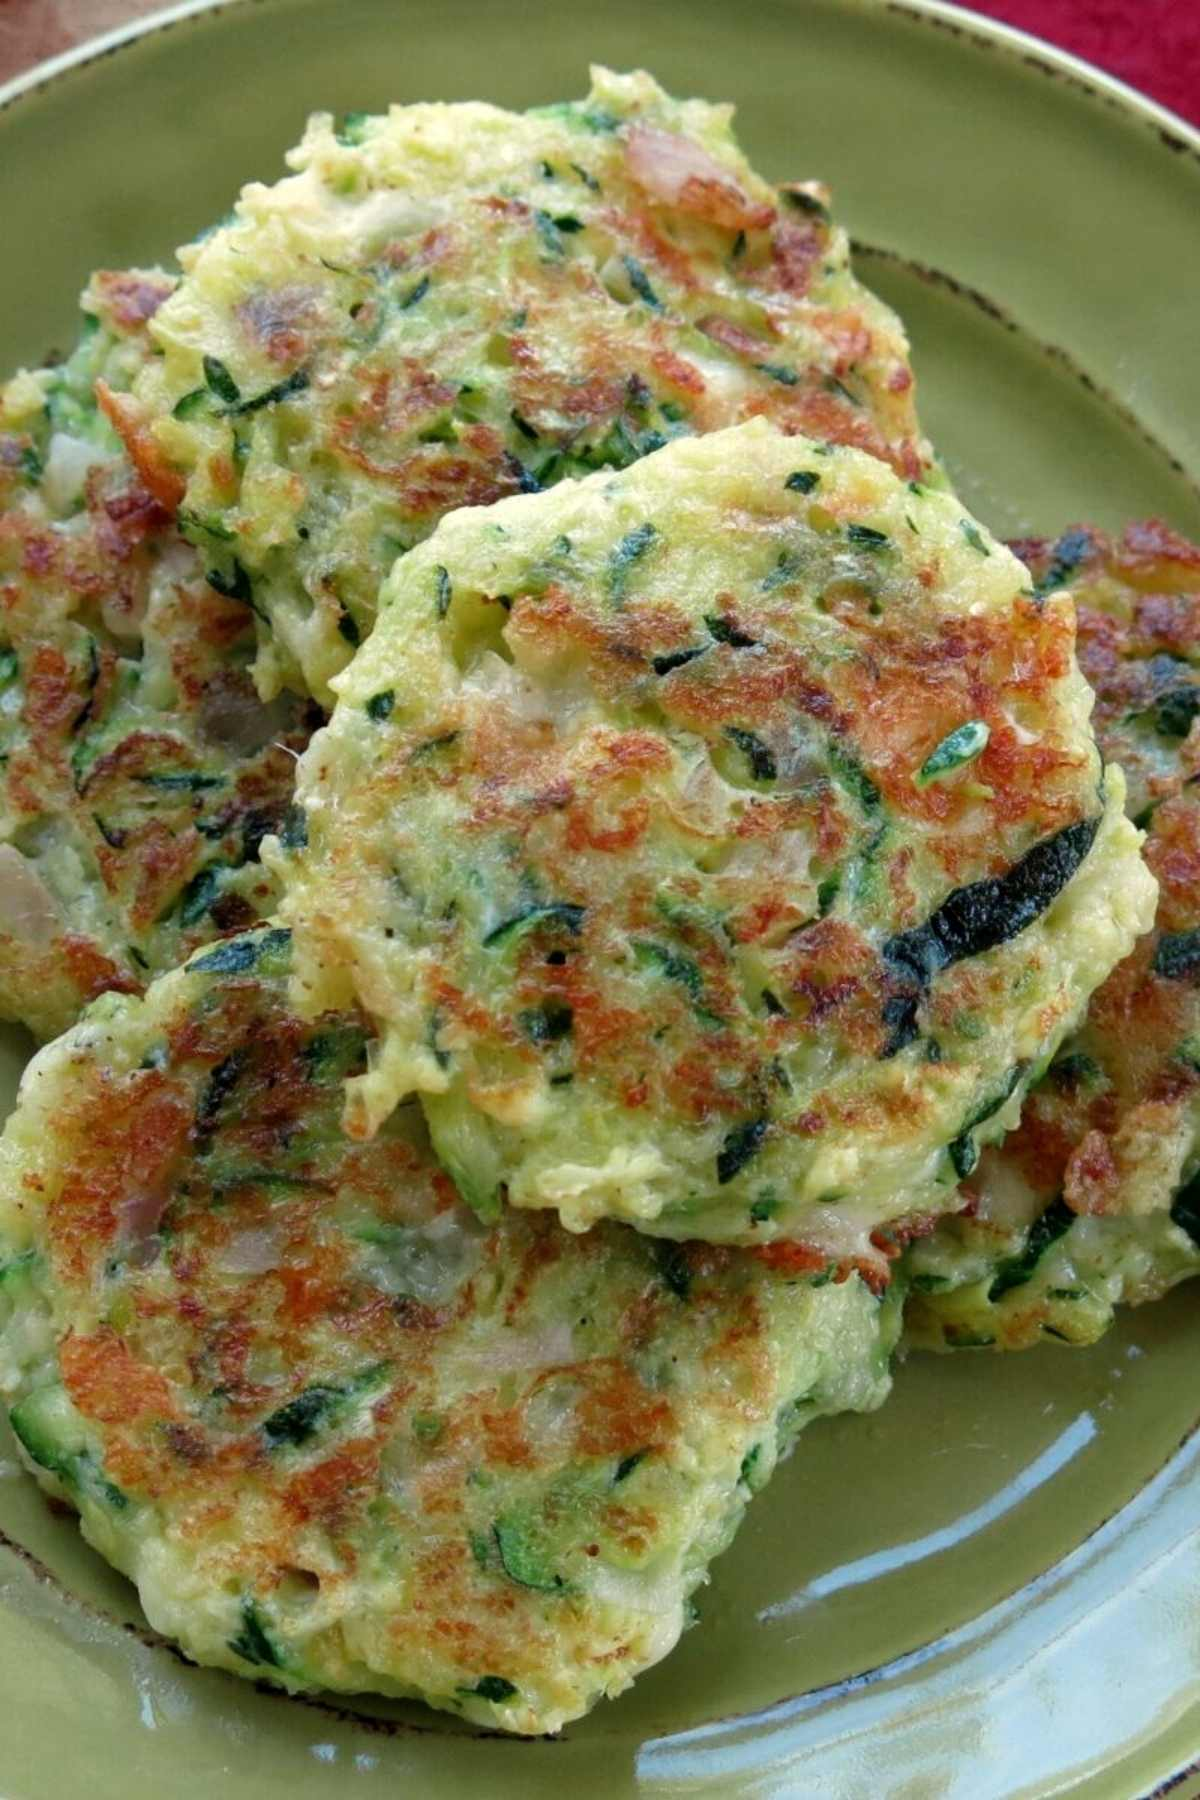 Healthy zucchini cakes piled on a plate.